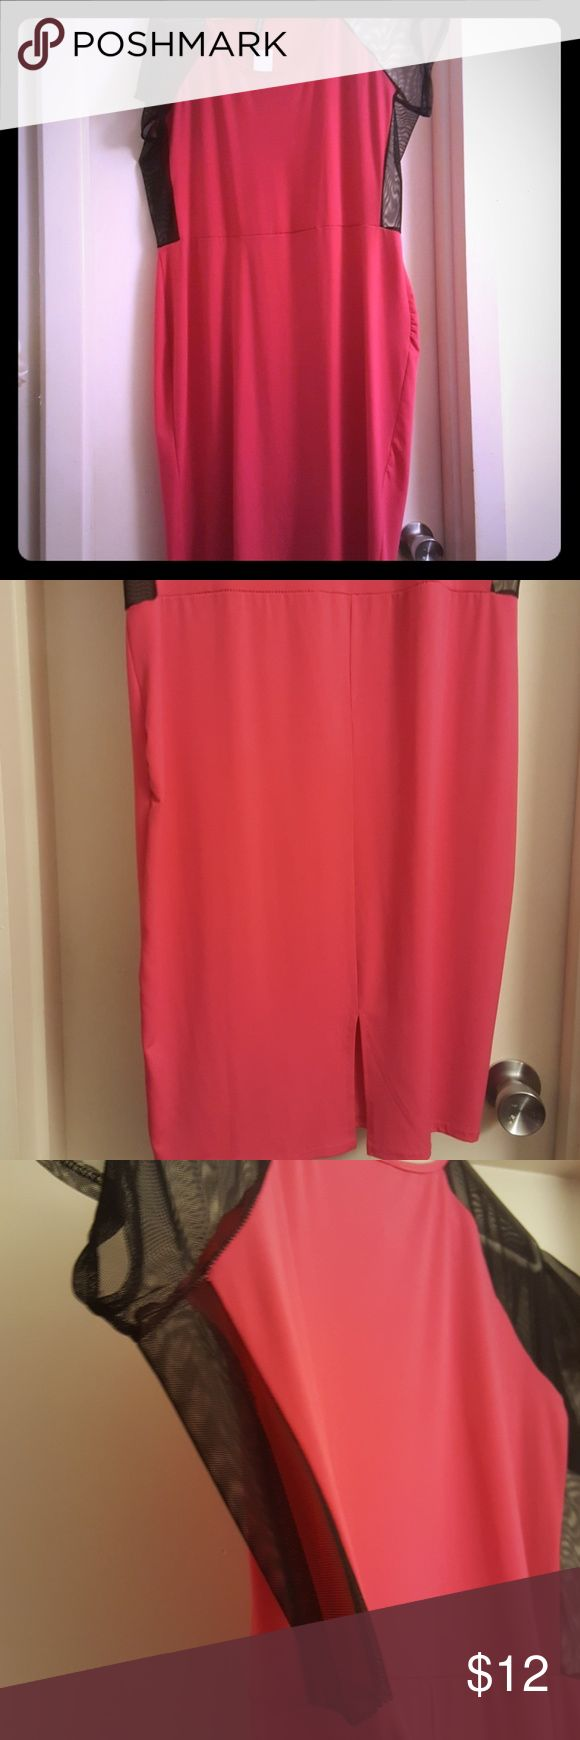 Plus size clubwear Hot pink night out dress with sheer sleeve & side panel for simple sexy detail, rear split for easy movement Dresses Mini